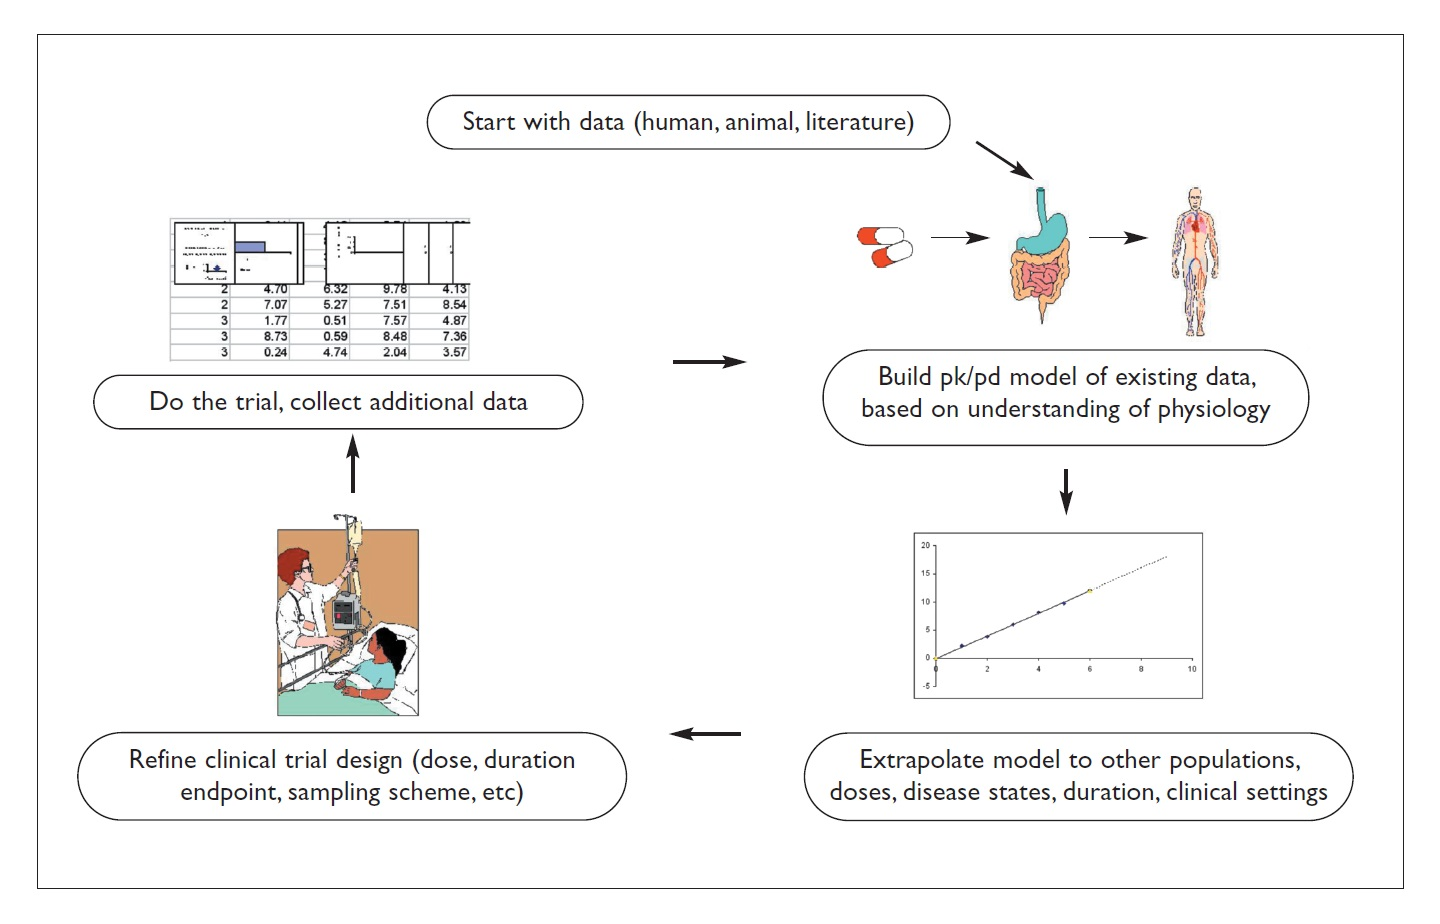 Figure 1 Diagram showing human data models and clinical trial design